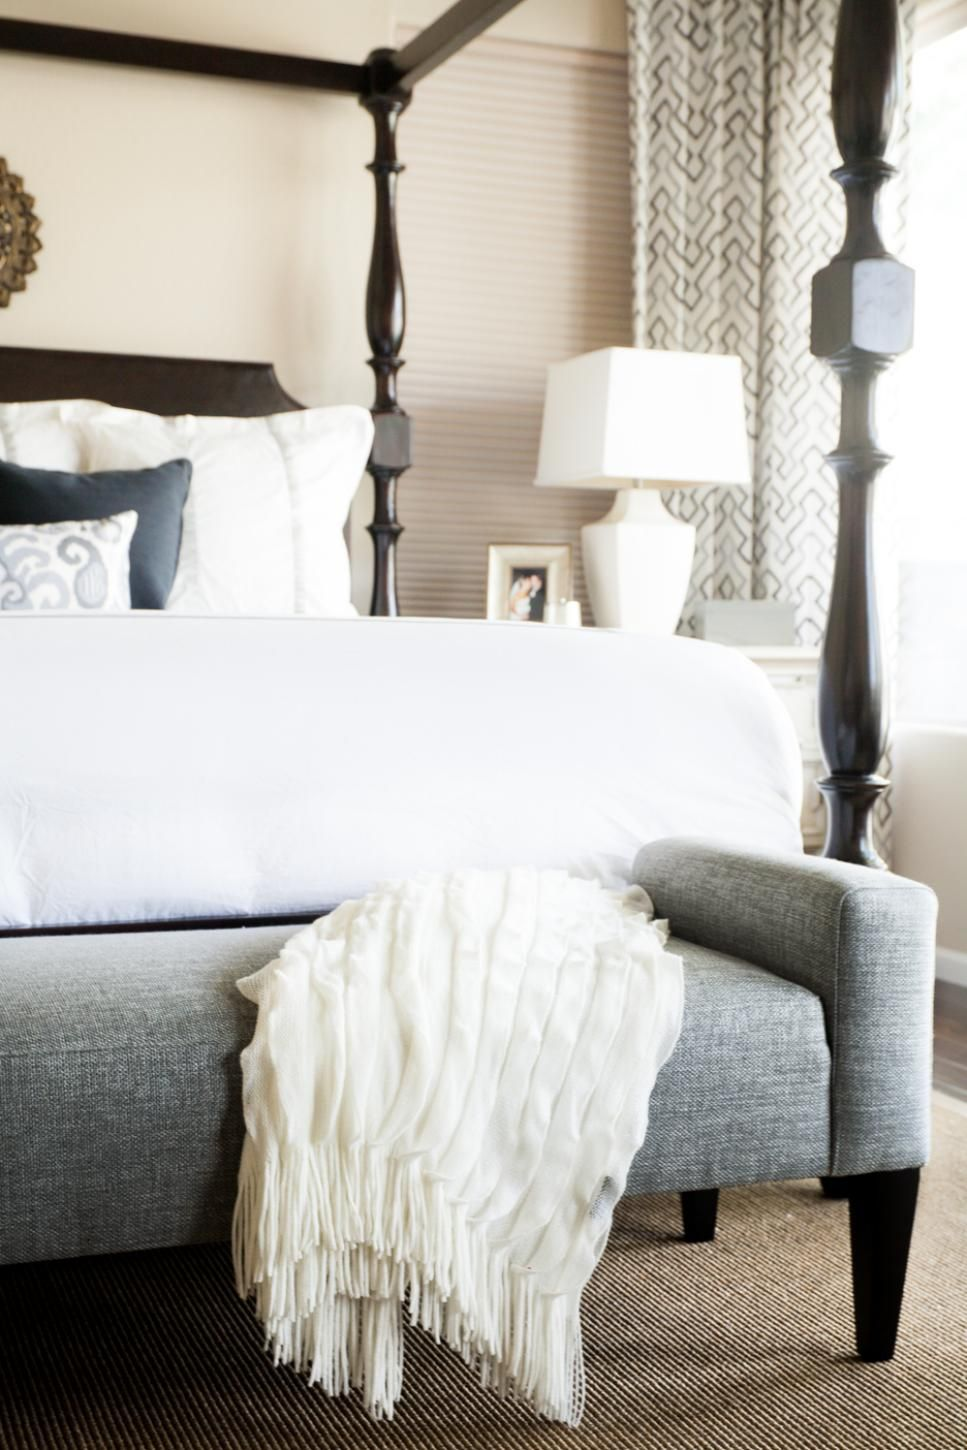 A Gray Upholstered Bench Placed At The Foot Of This Canopy Bed Makes A Comfortable Stylish Relaxing Spot Bed Design